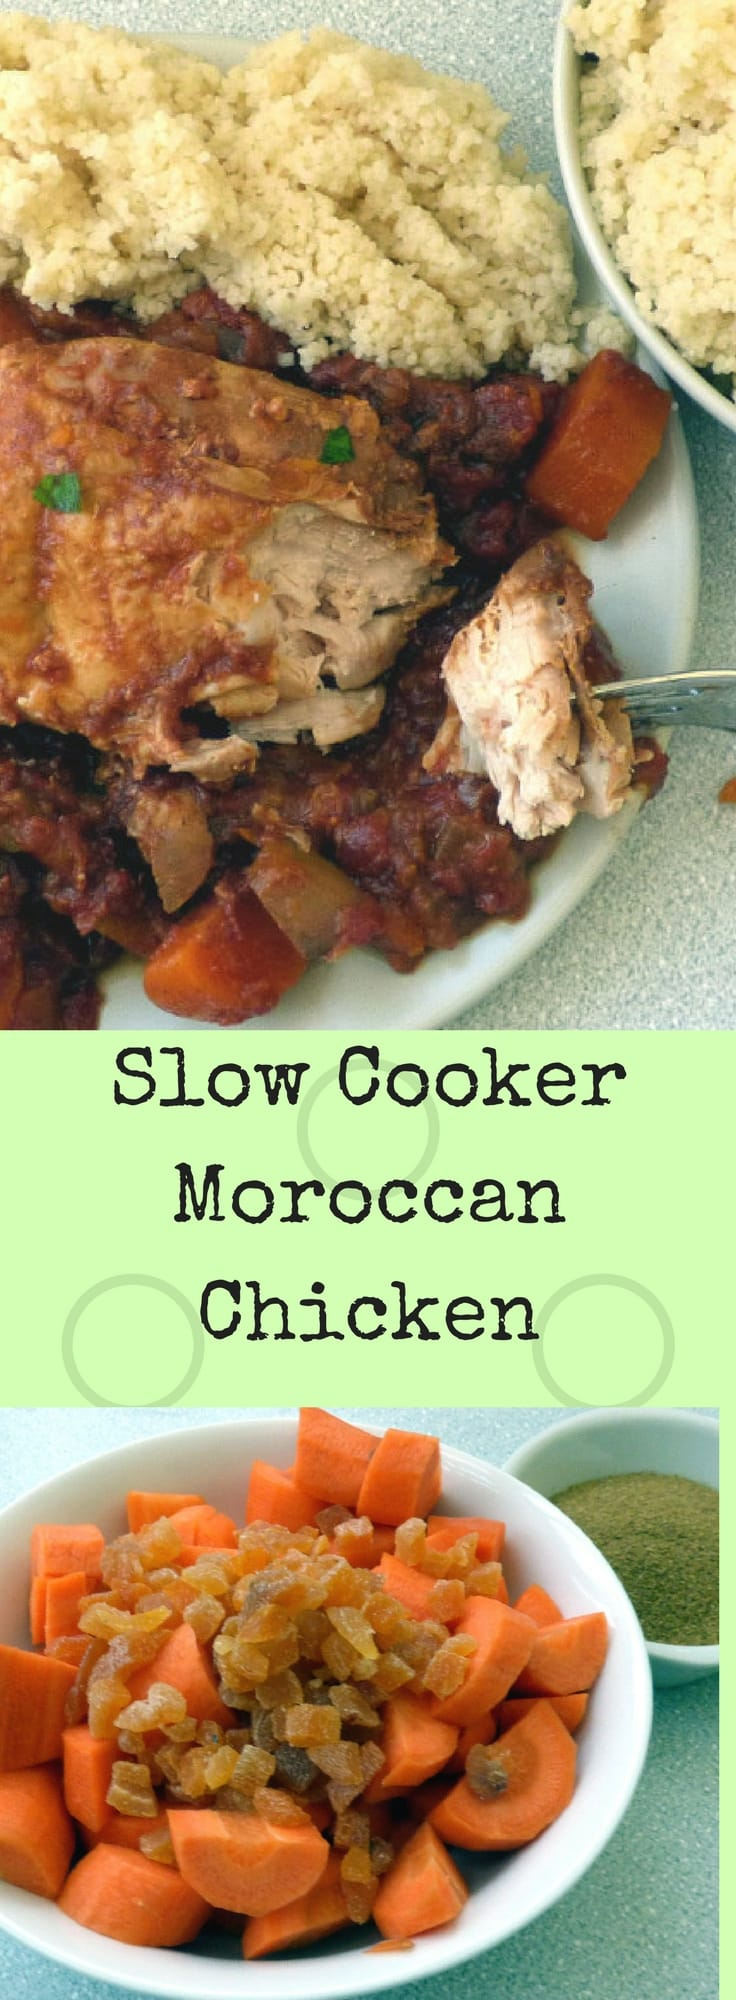 slow cooker moroccan chicken collage with text 'slow cooker moroccan chicken' and photo of carrots, cumin and chopped dried apricots